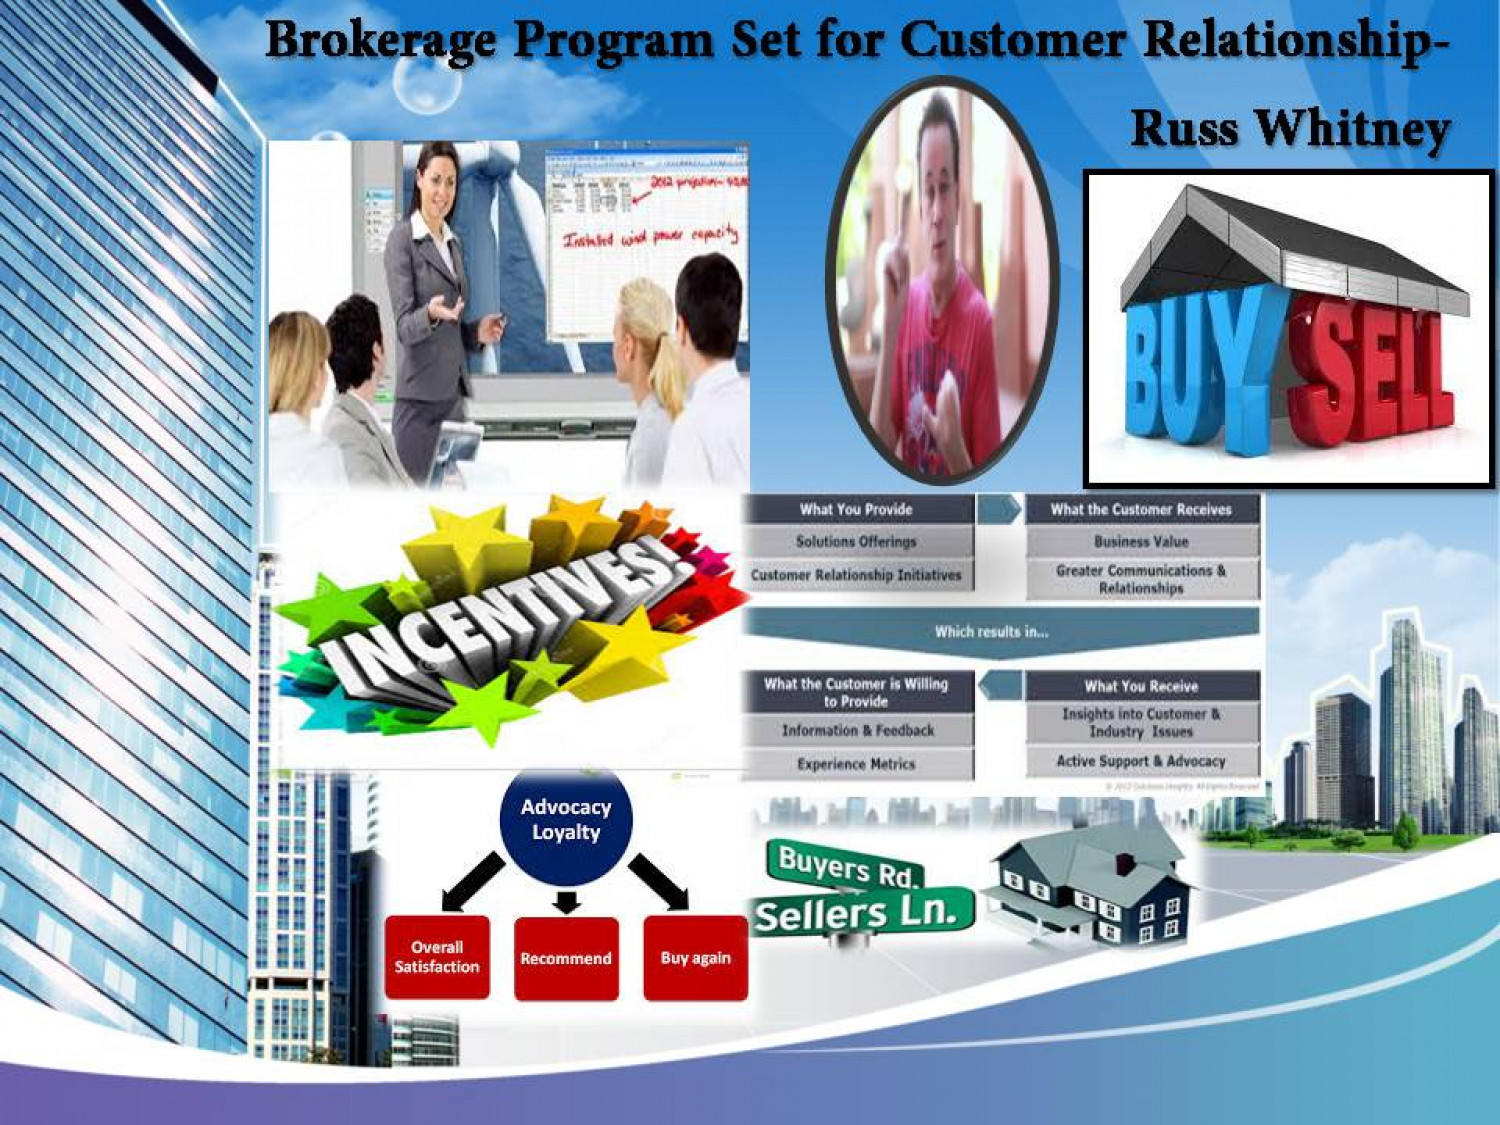 Brokerage Program Set for Customer Relationship Infographic